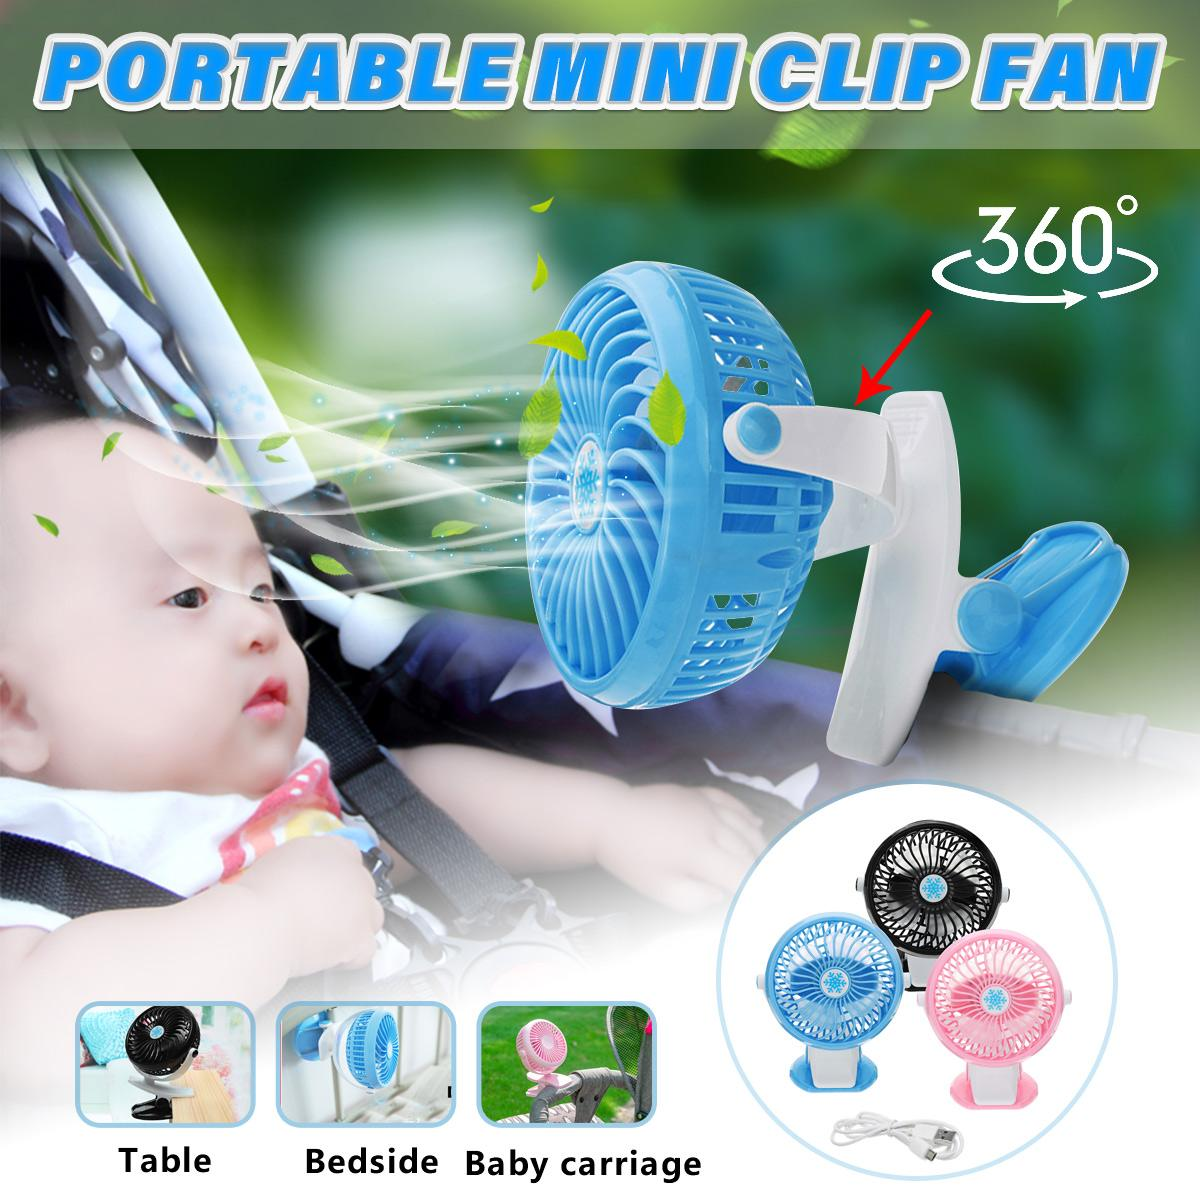 DC 5V-9V Mini Mute Clip Fan Rechargeable for Baby Stroller Fans Portable Air Cooling Desk Table USB Fan for Home Car OfficeDC 5V-9V Mini Mute Clip Fan Rechargeable for Baby Stroller Fans Portable Air Cooling Desk Table USB Fan for Home Car Office